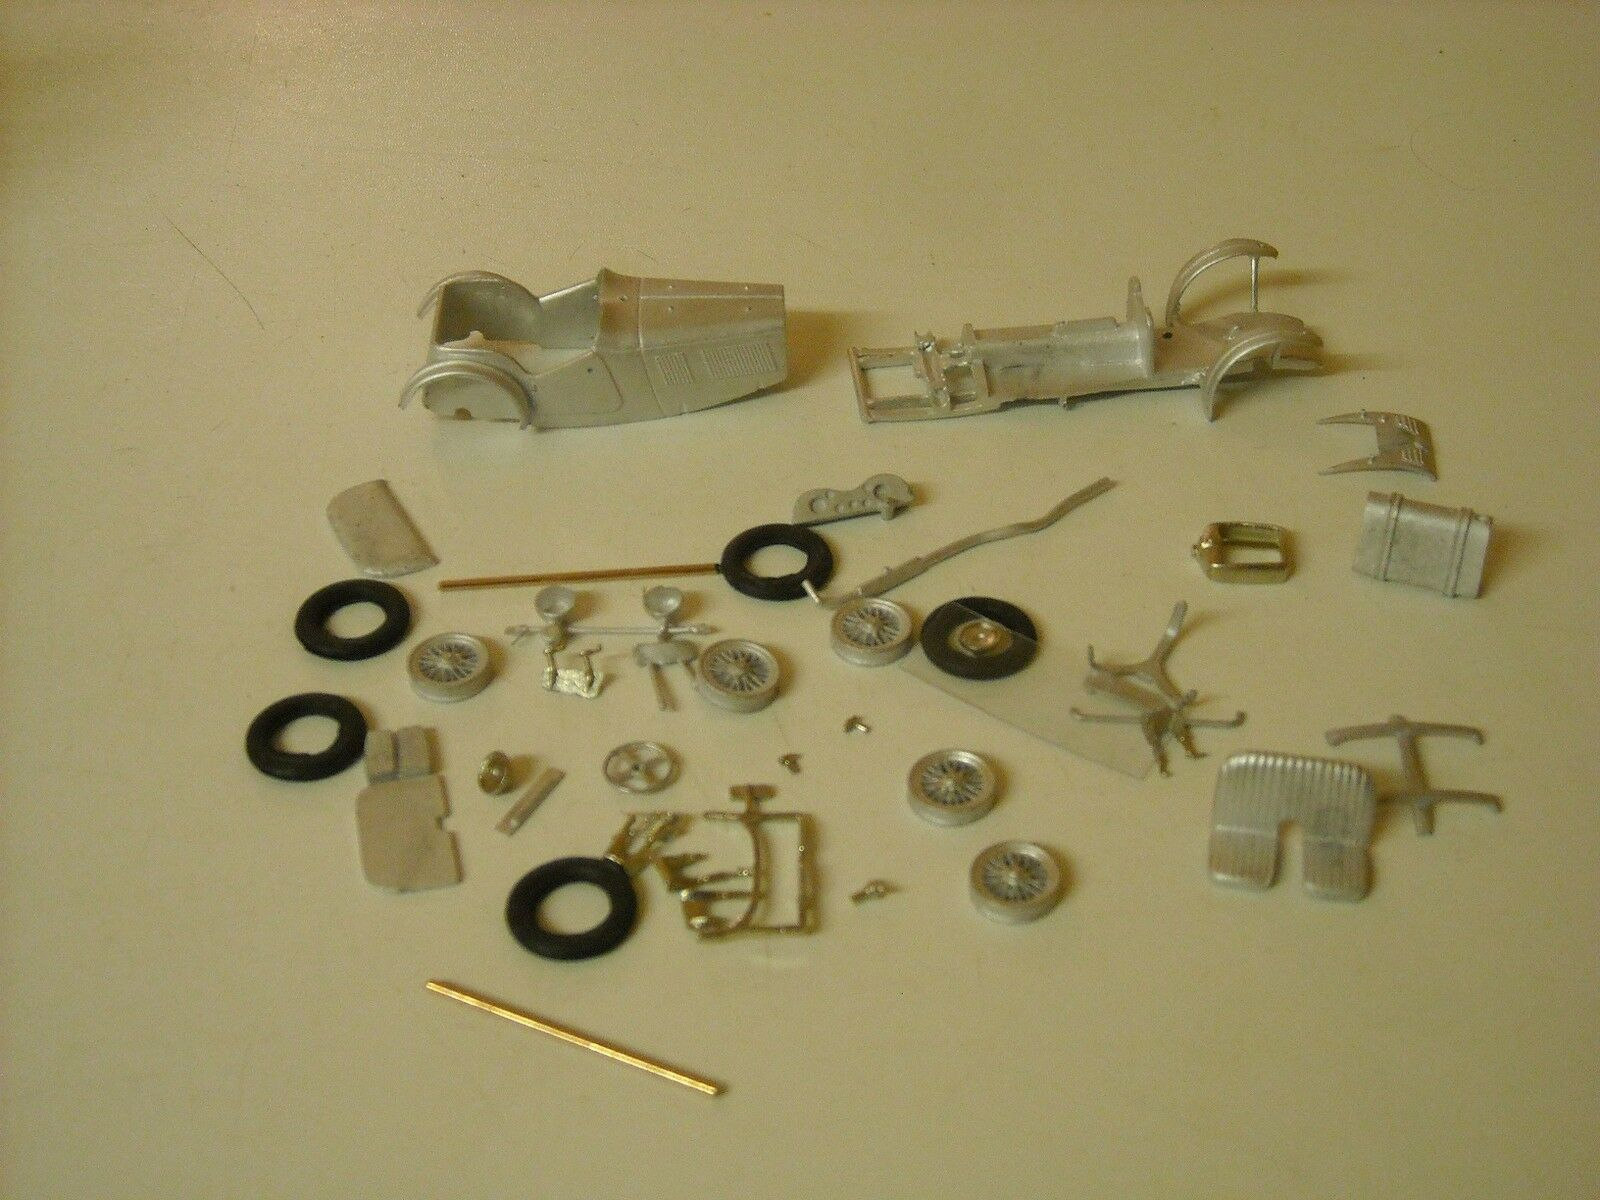 MG J3 Midget with cycle wings kit, 1 43rdscale by K&R Replicas